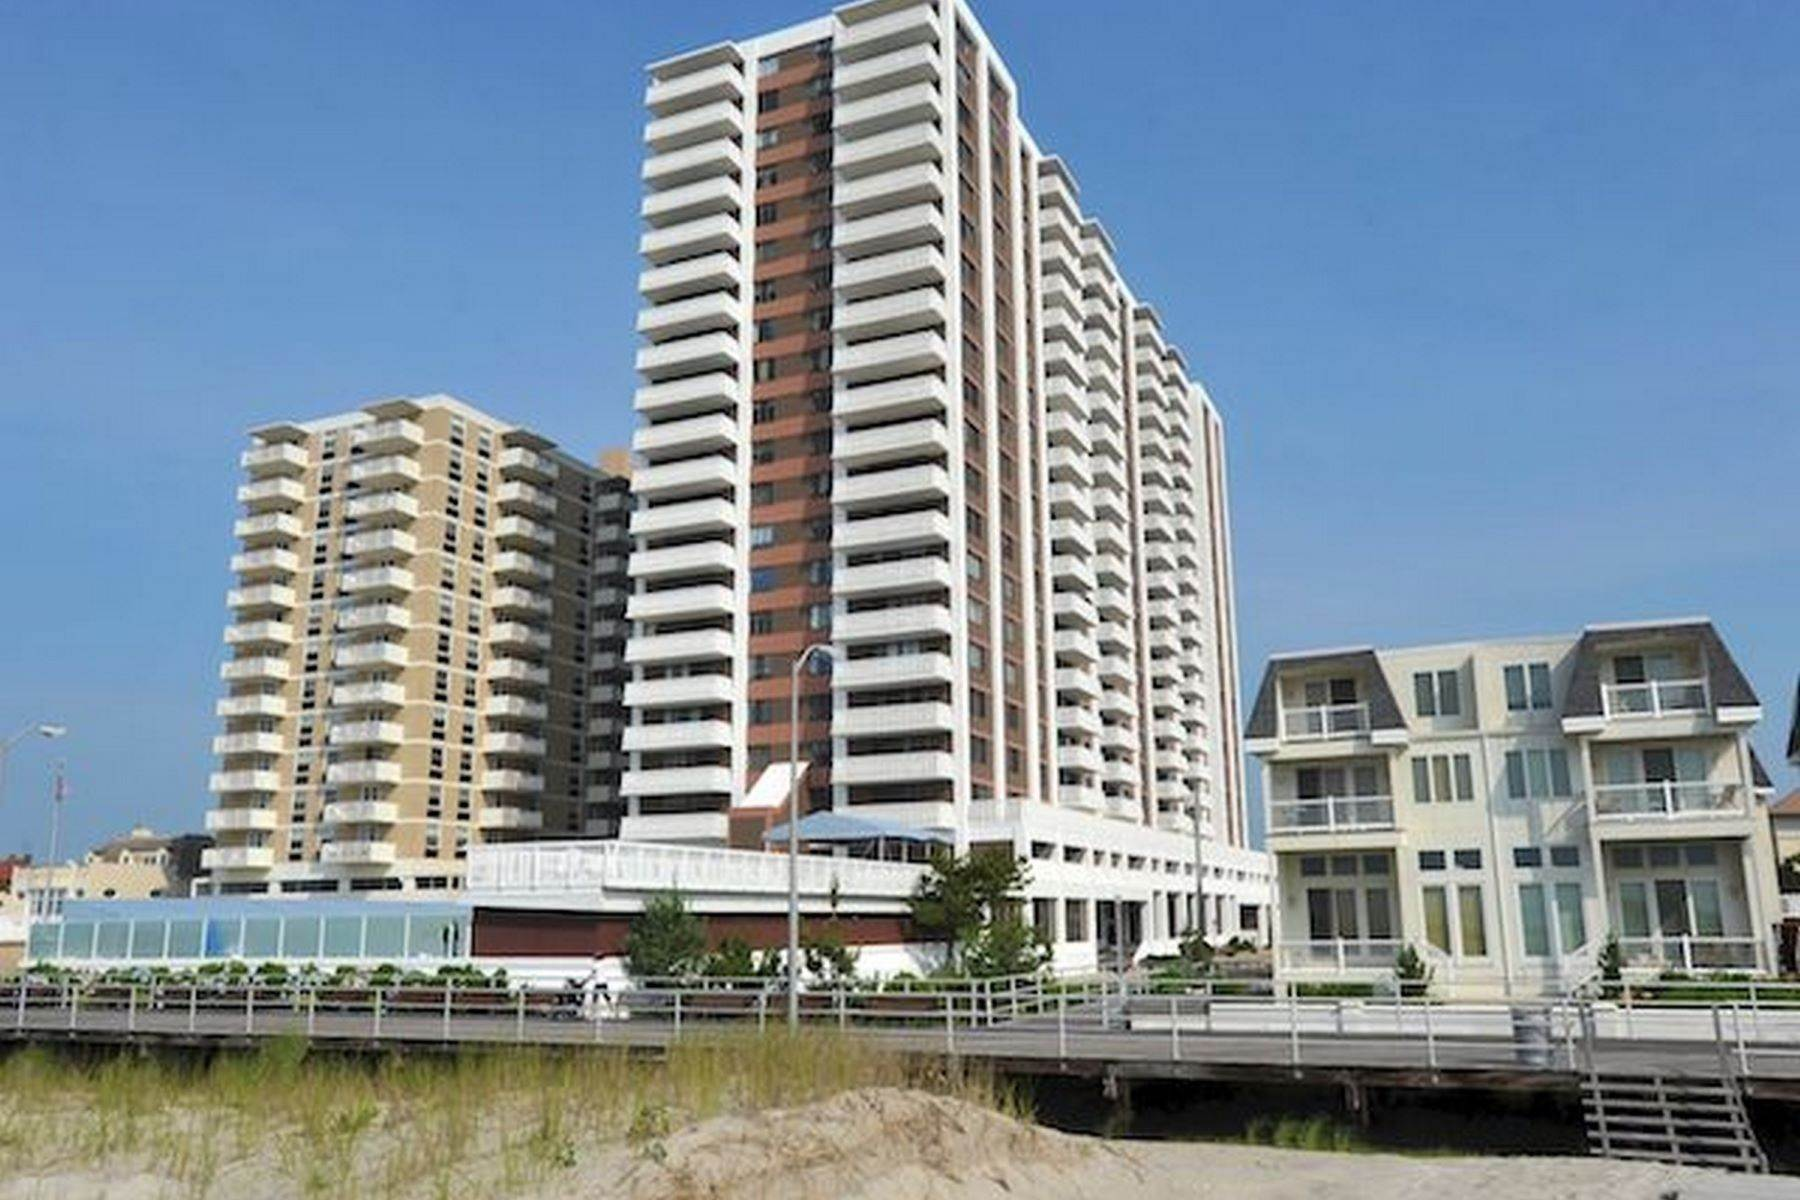 Property for Sale at 100 S Berkely #21A 100 S Berkley Ave #21A Atlantic City, New Jersey 08401 United States